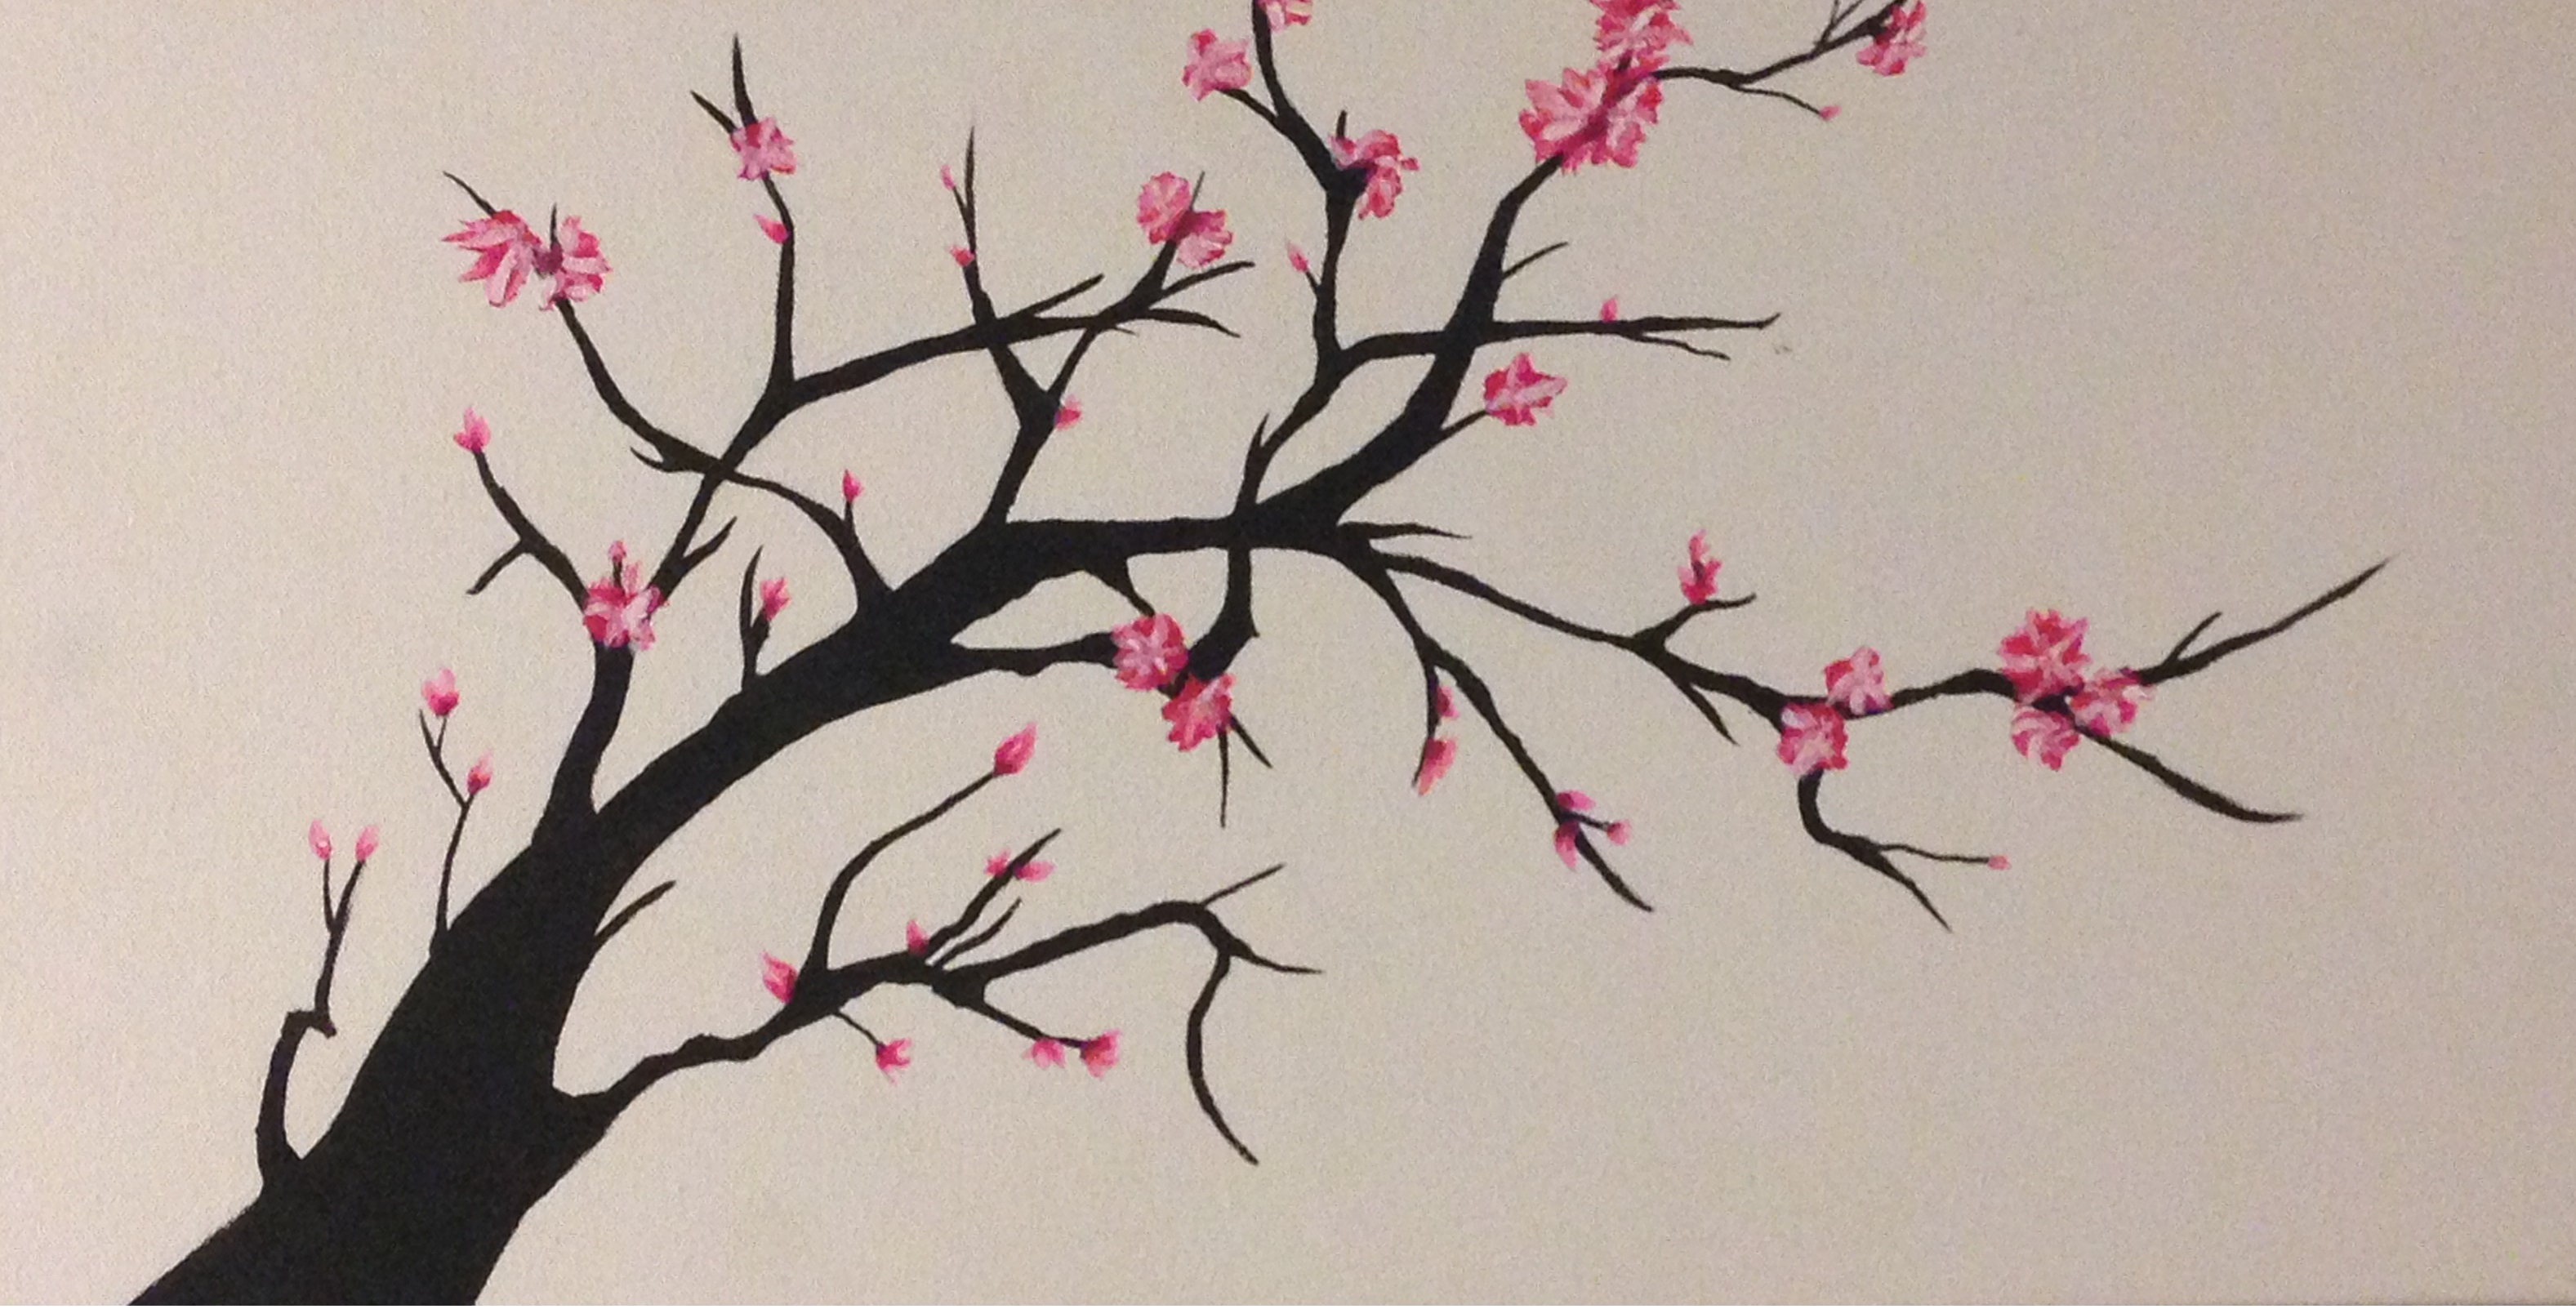 Blossom Tree Drawing: Cherry Blossom Tree Drawing Step By Step At GetDrawings